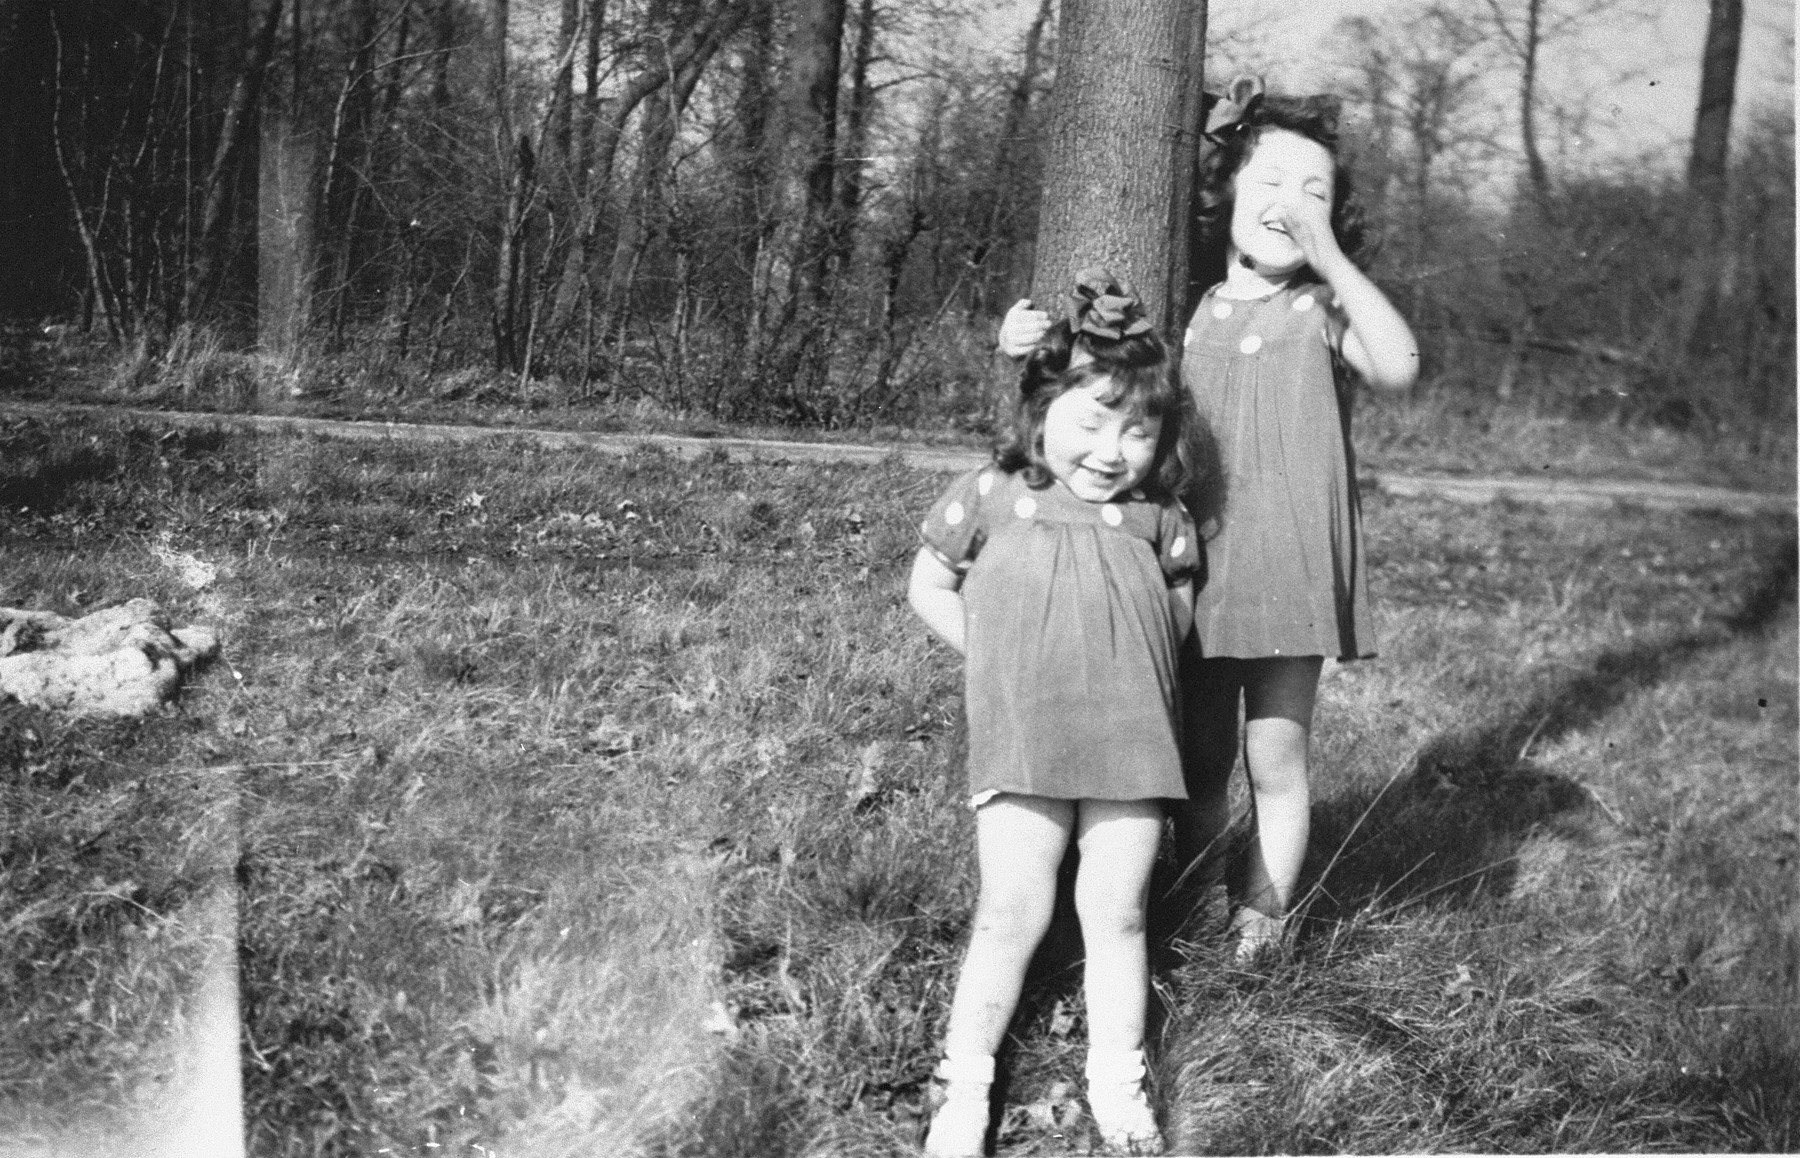 Margo and Annette Lederman, two Jewish children in hiding, play in the yard of the van Buggenhout home in Rumst, Belgium.